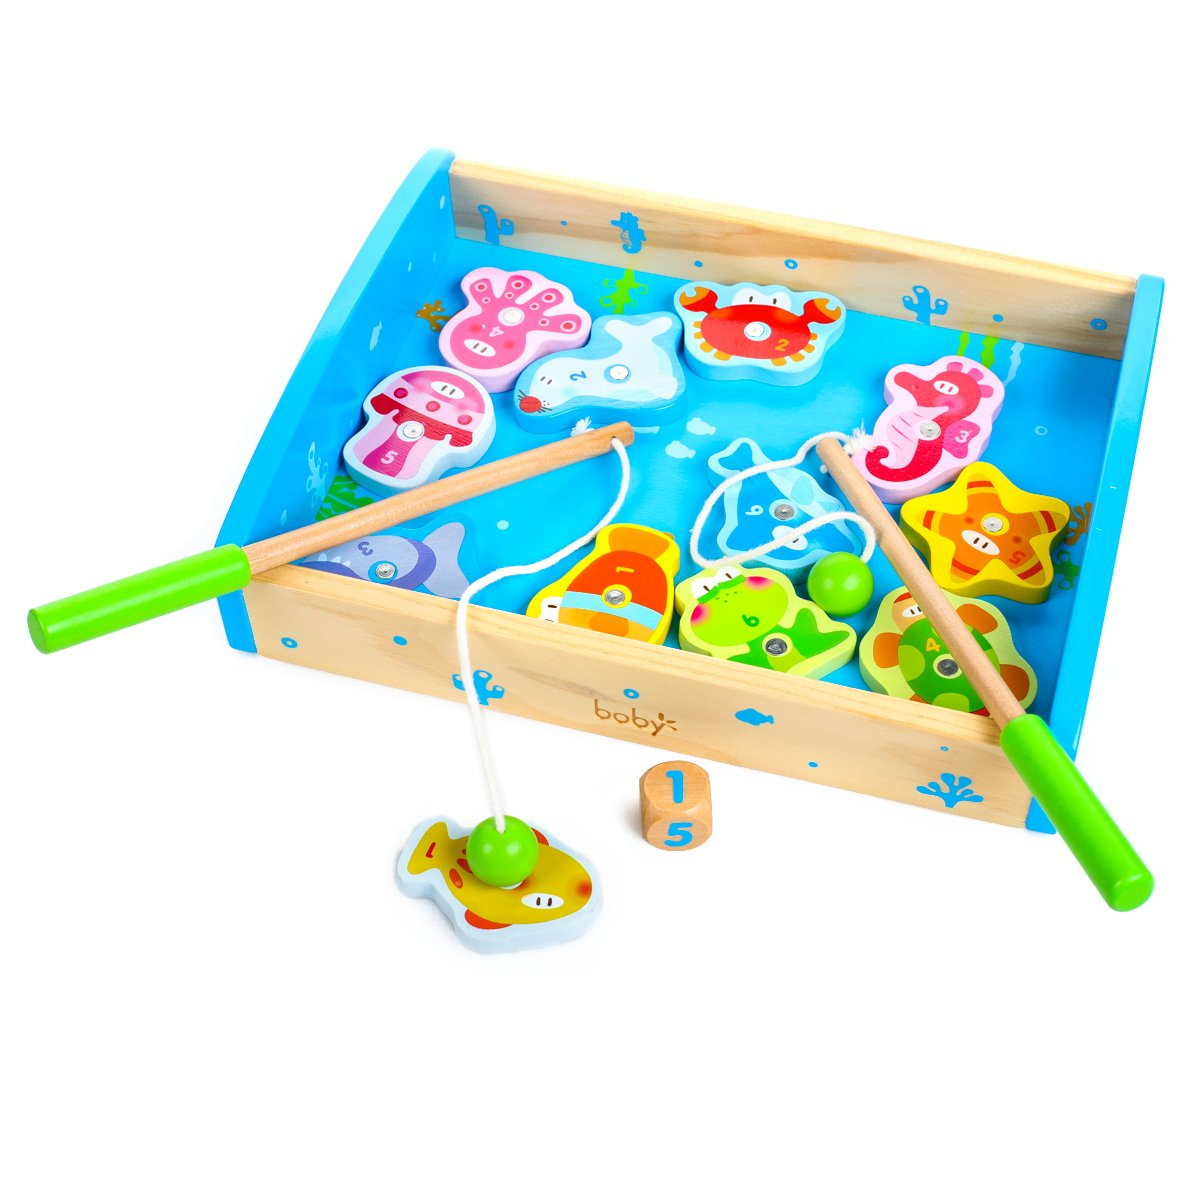 rolimate 14-Piece Fishes Basic Educational Development Wooden Magnetic Bath Fishing Travel Table Game, Birthday Gift Toy for age 3 4 5 Year Old Kid Children Baby Toddler Boy Girl Magnet Toy (1.0)